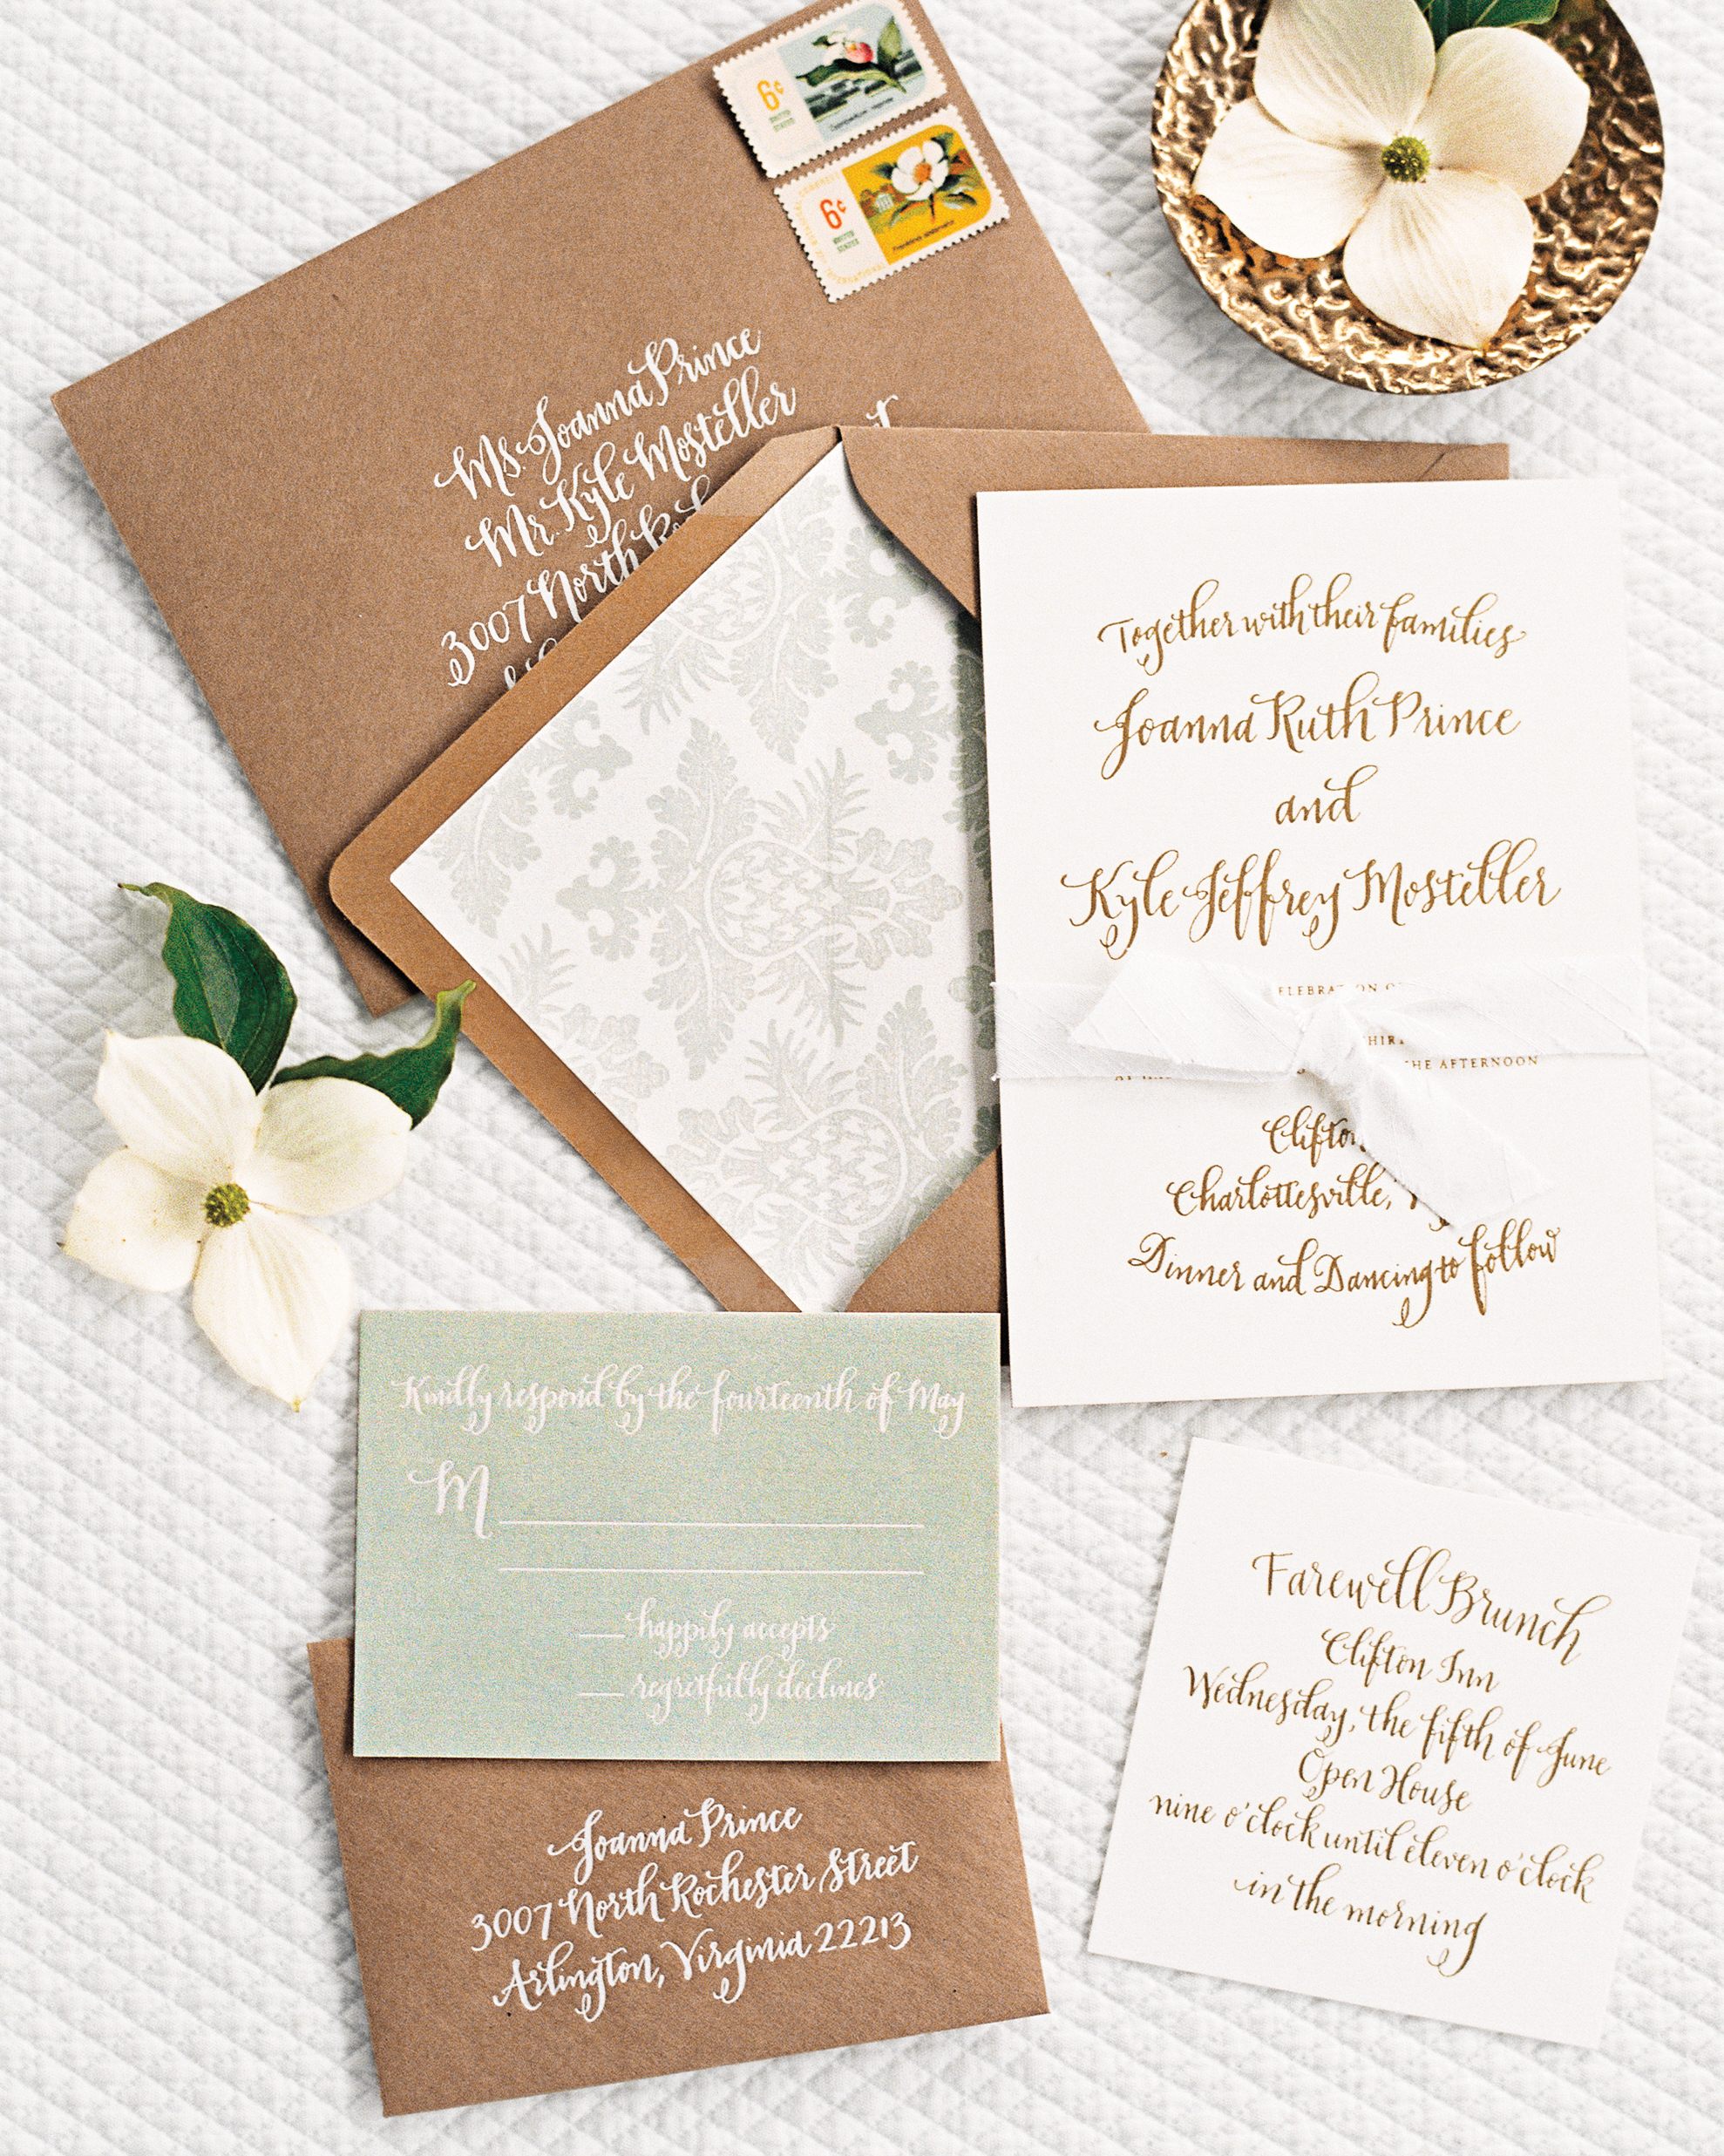 joanna-kyle-real-weddings-invitation-008311-r1-009-d111223.jpg